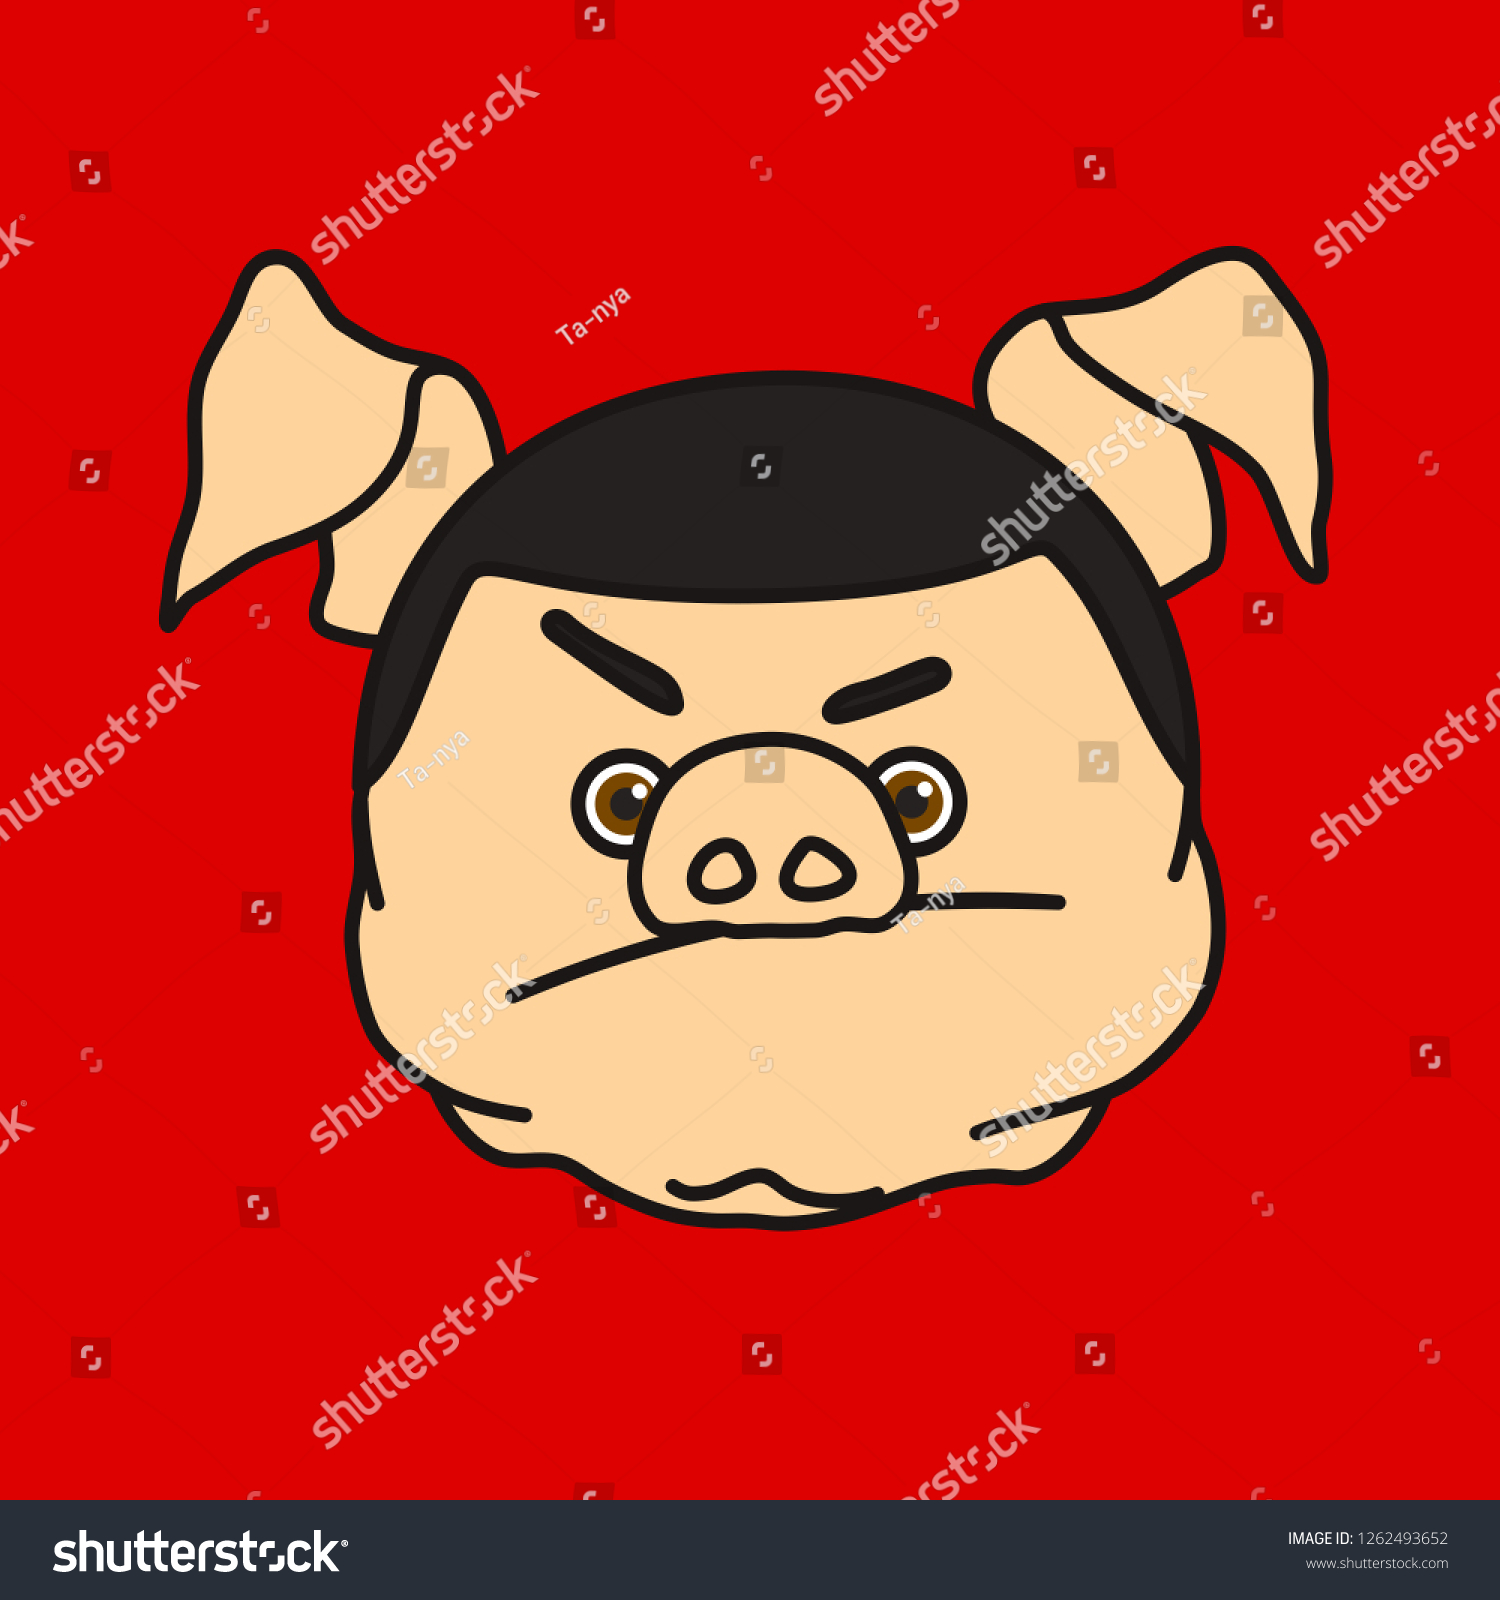 Emoticon Emoji Nonplussed Fat Pig Man Stock Vector (Royalty Free.